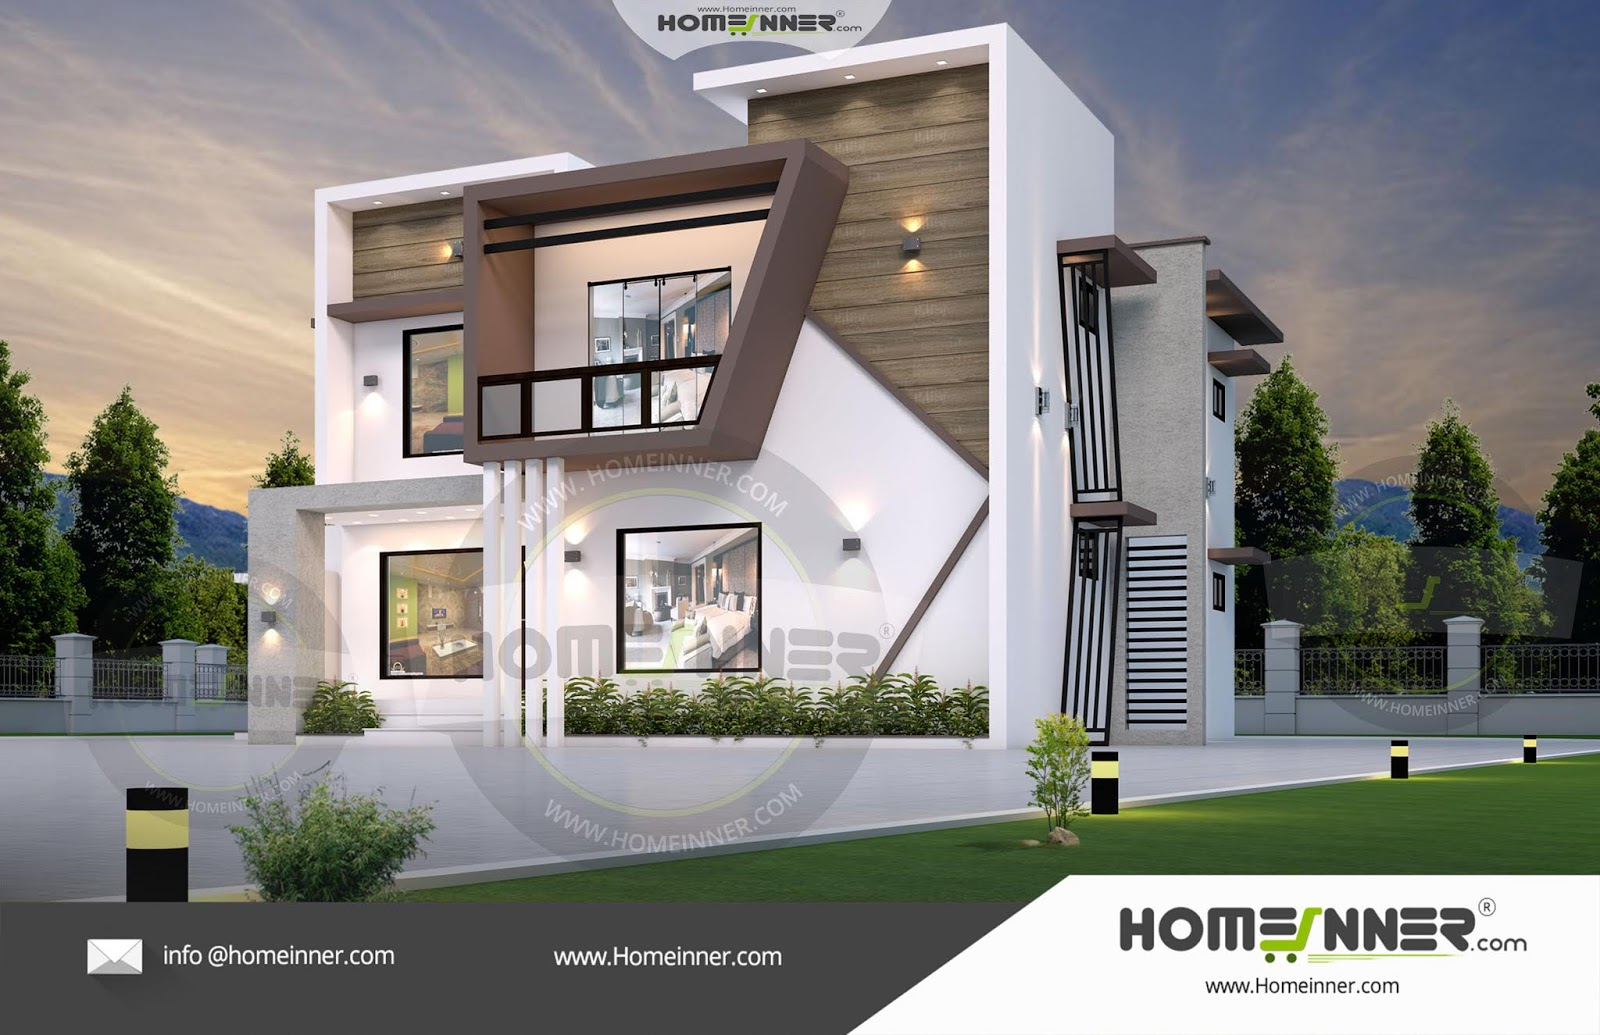 HIND-39955 Architectural house plan villa floor plan package